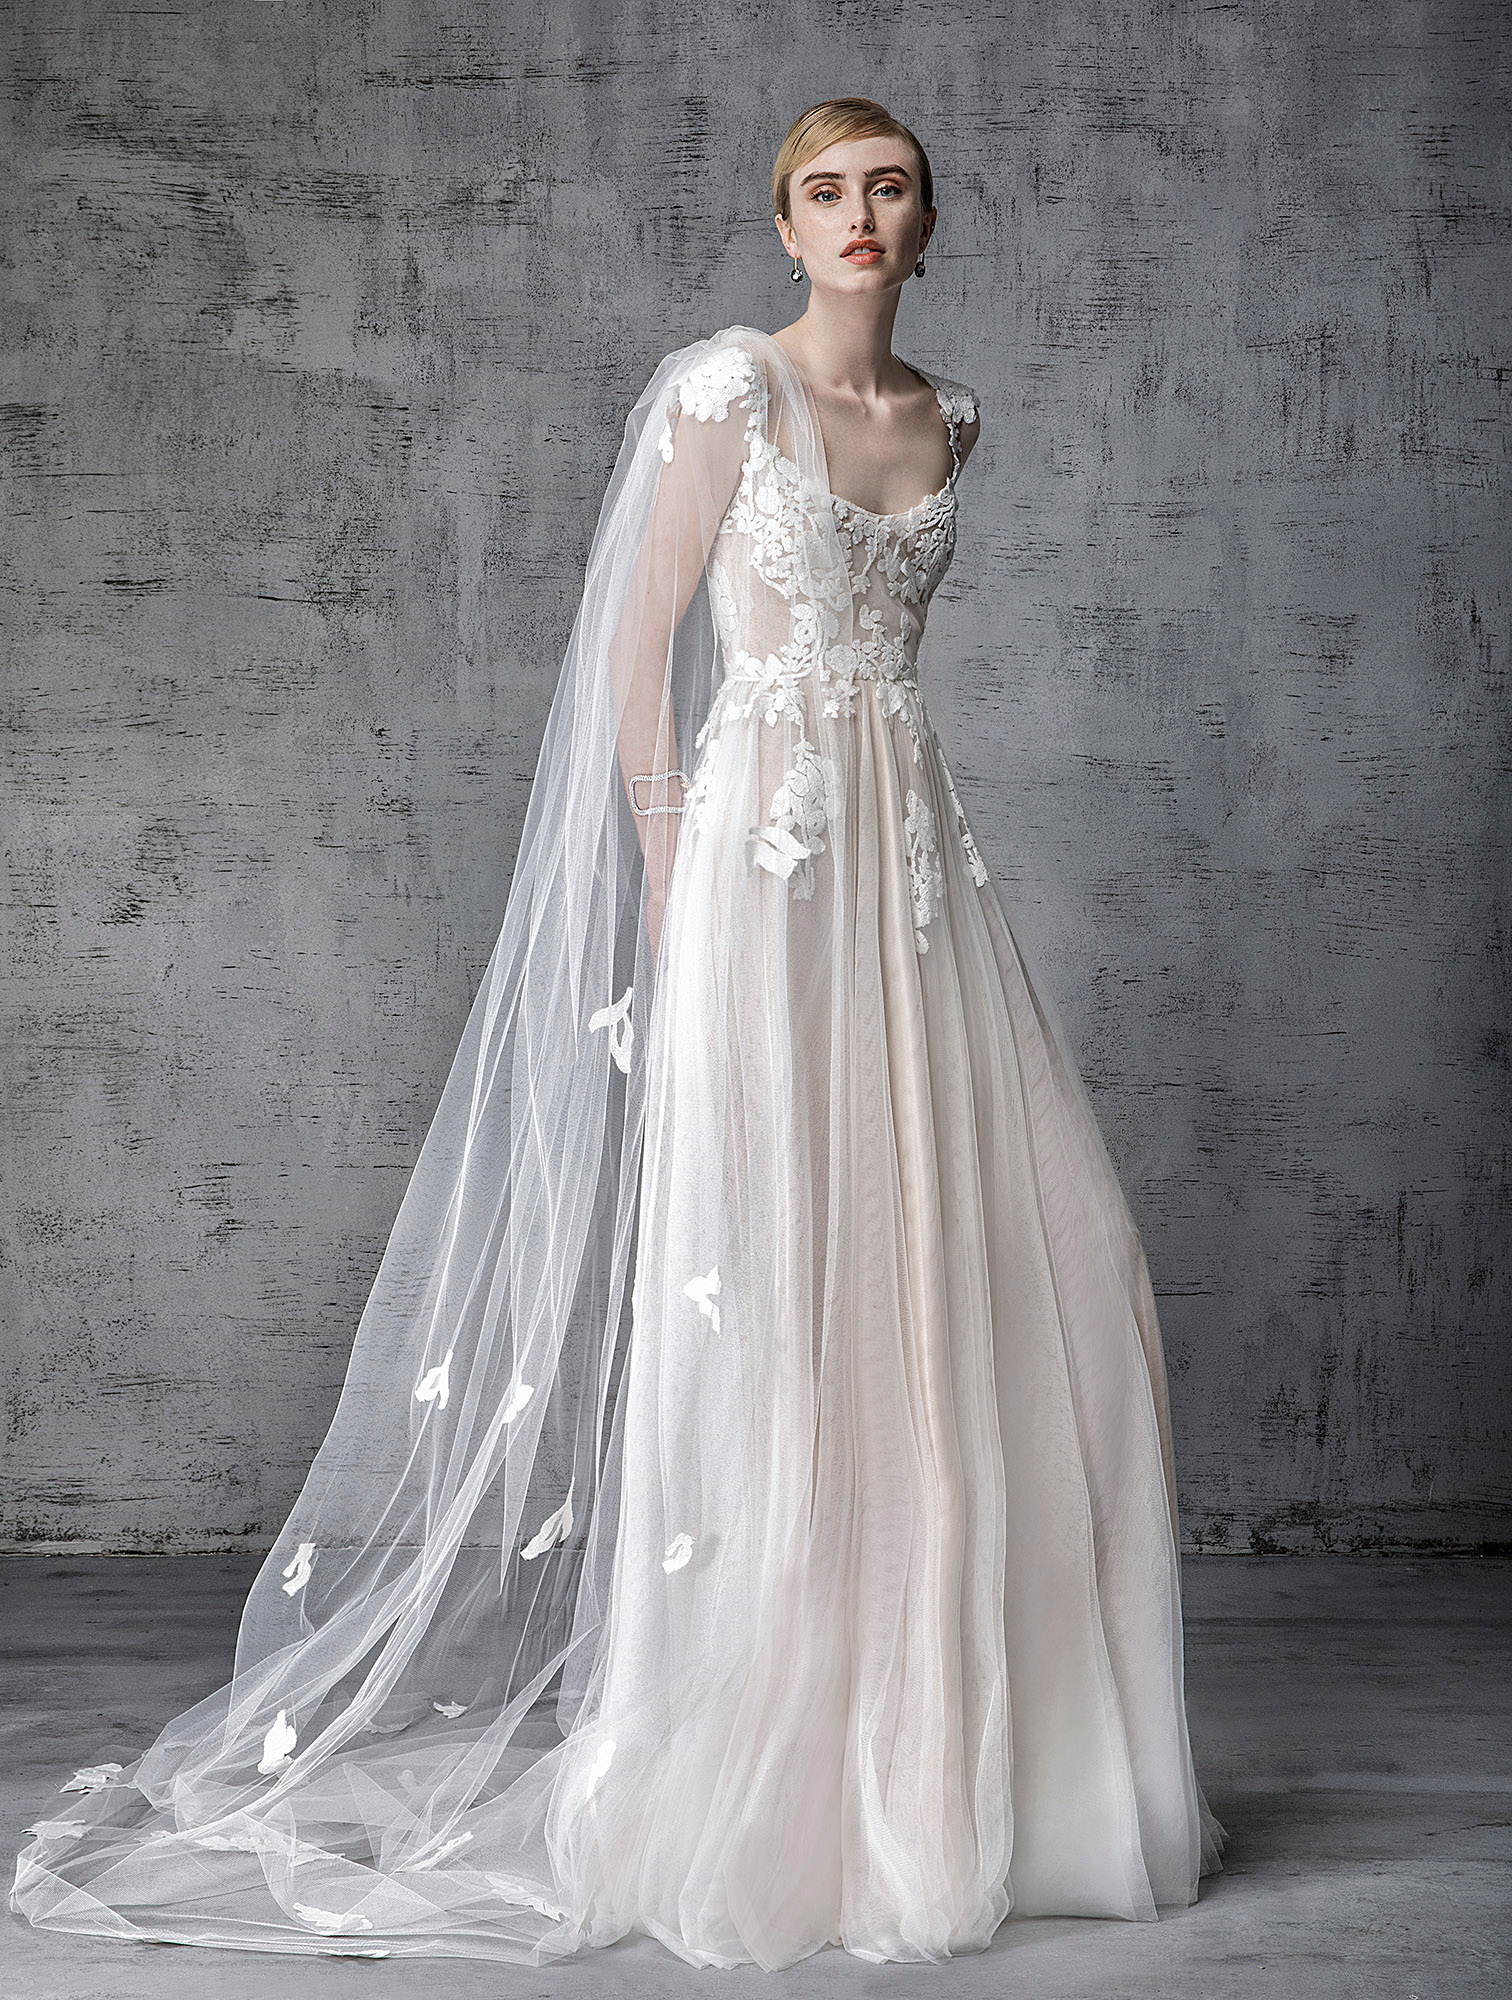 victoria kyriakides wedding dress spring 2019 cap-sleeved embroidered a-line